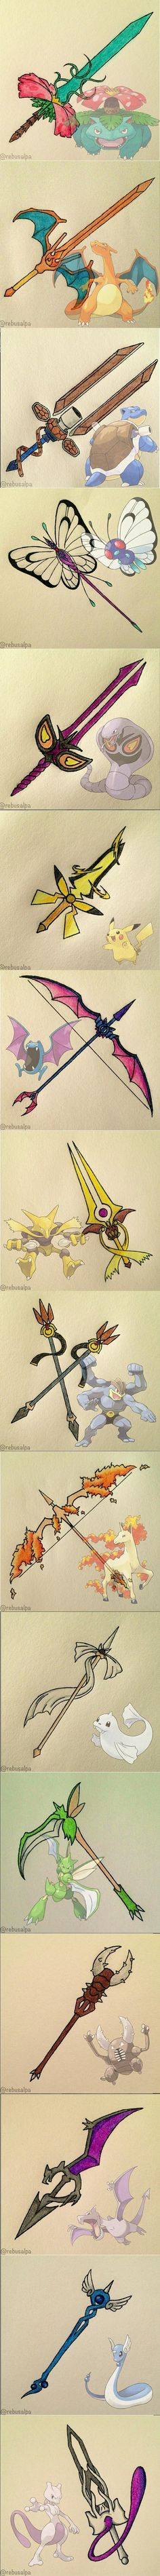 Pokémon Weapon Art.